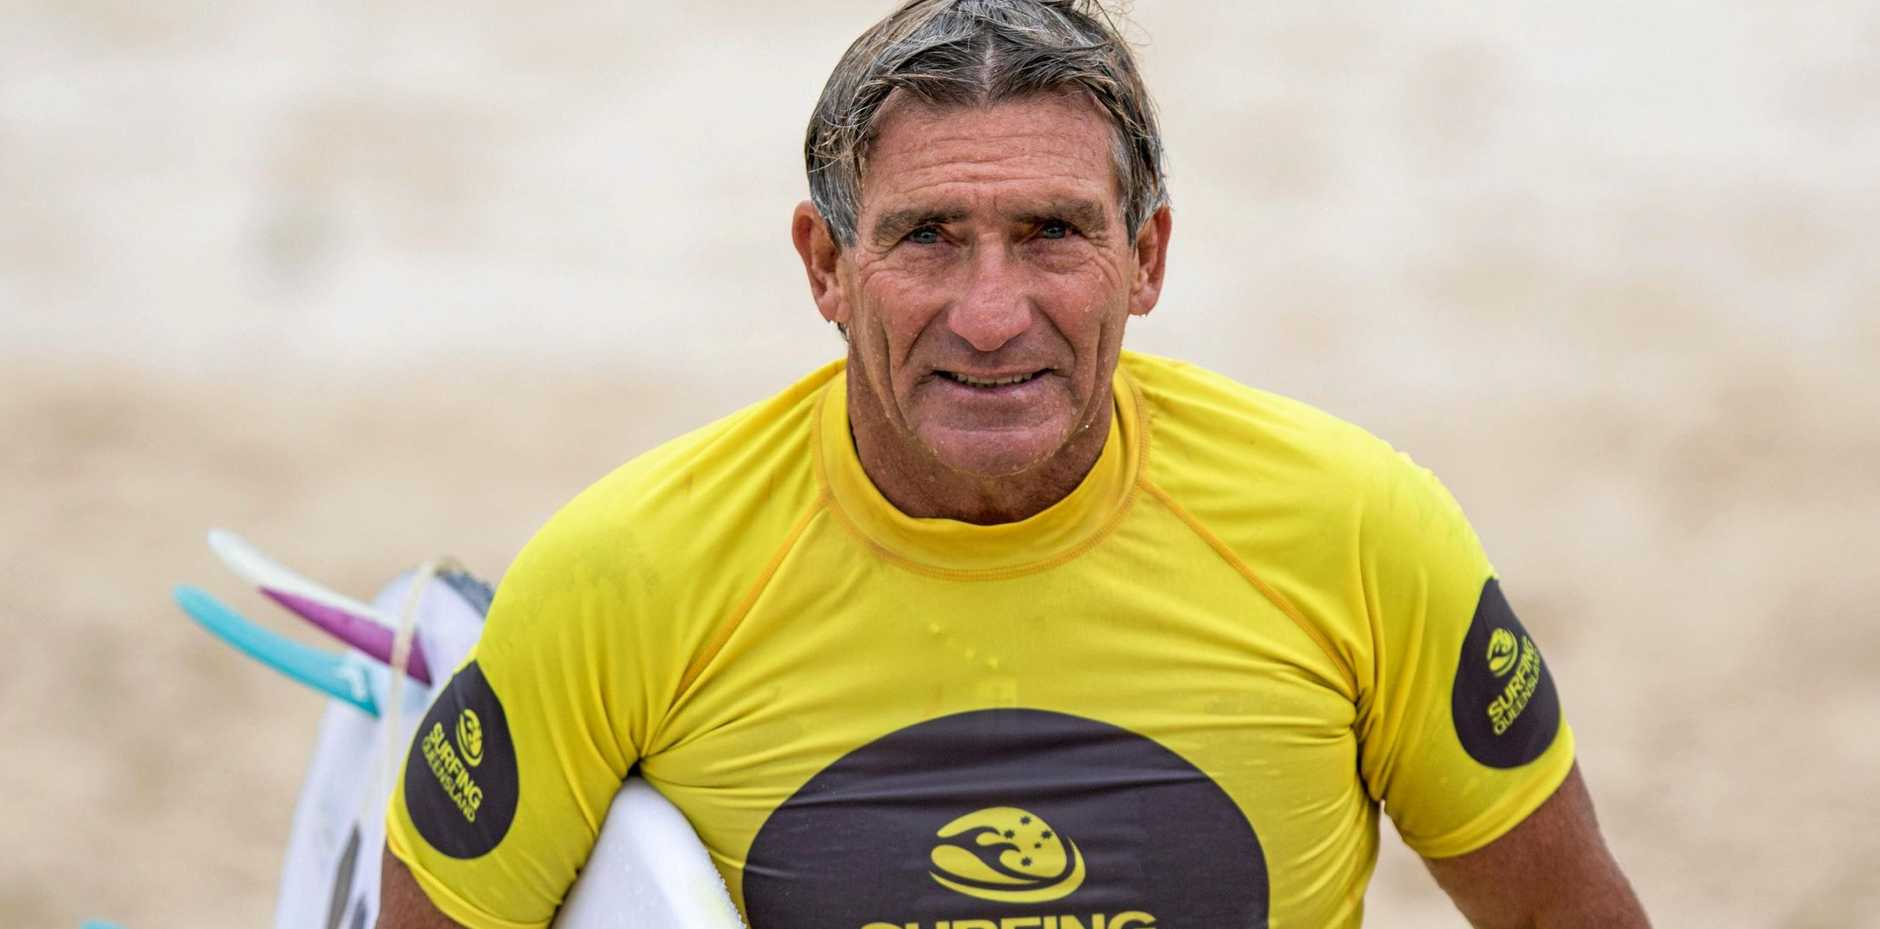 Bruce Dunne has won the over 60 men's Queensland surfing title and will now head to the national championships in August